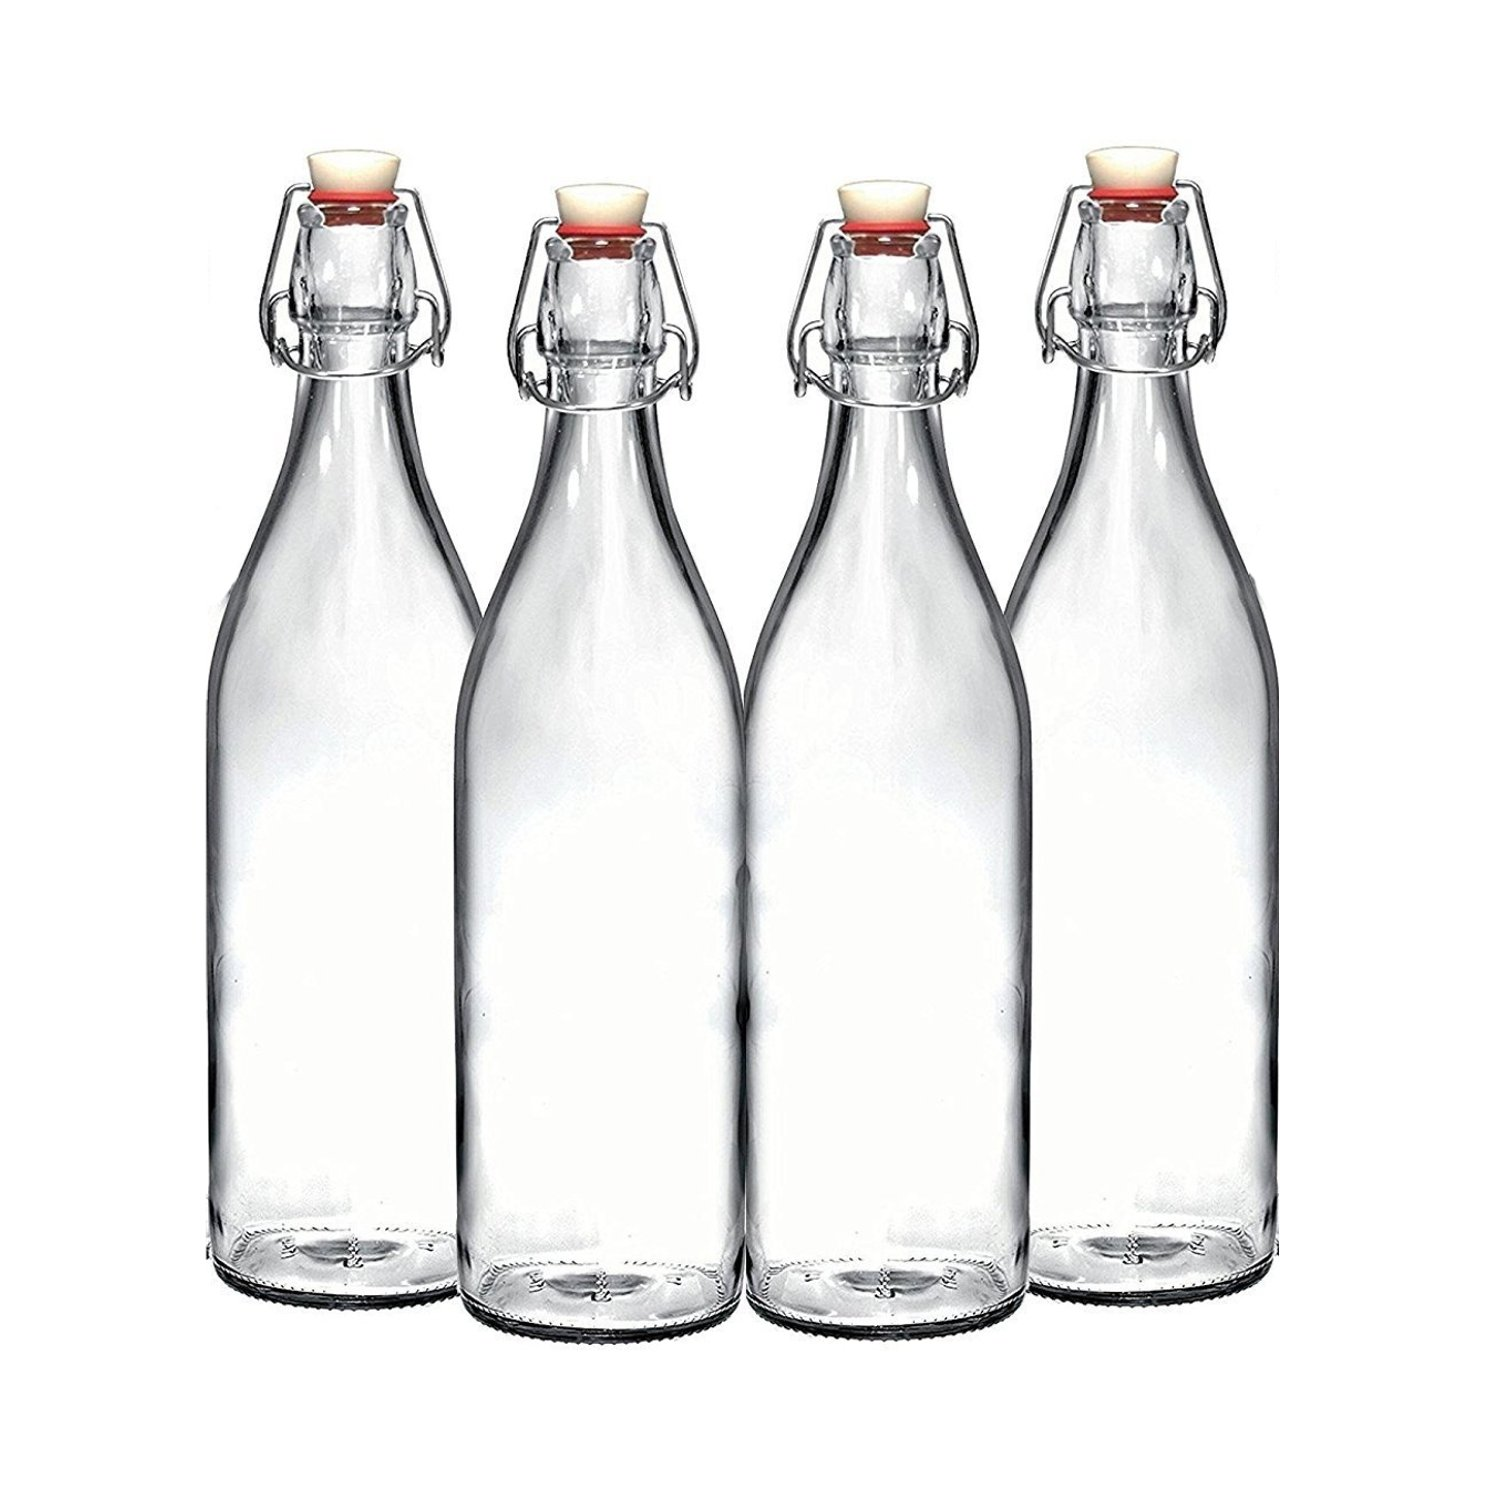 Set of 4-33.75 Oz Giara Glass Bottle with Stopper Caps, Carafe Swing Top Bottles with Airtight Lids for Oil, Vinegar, Beverages, Liquor, Beer, Water, Kombucha, Kefir, Soda, By California Home Goods